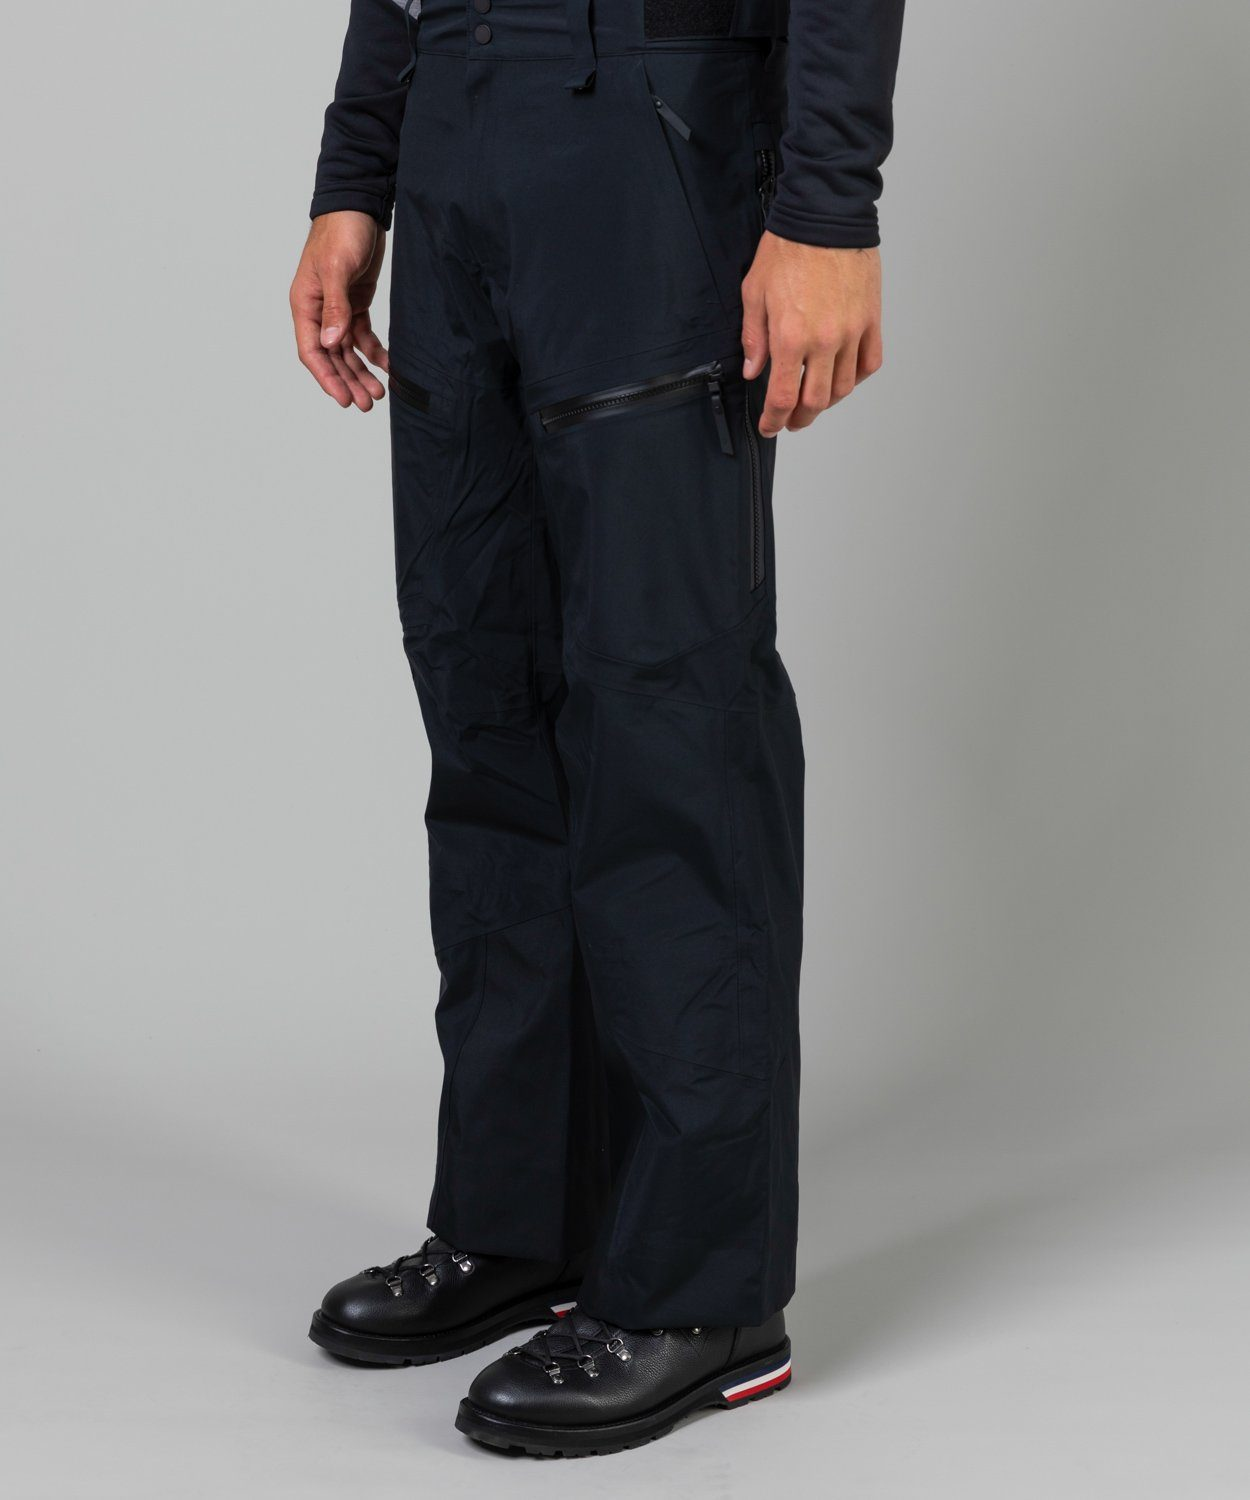 Men's Gravity Ski Pants Ski Pants Peak Performance